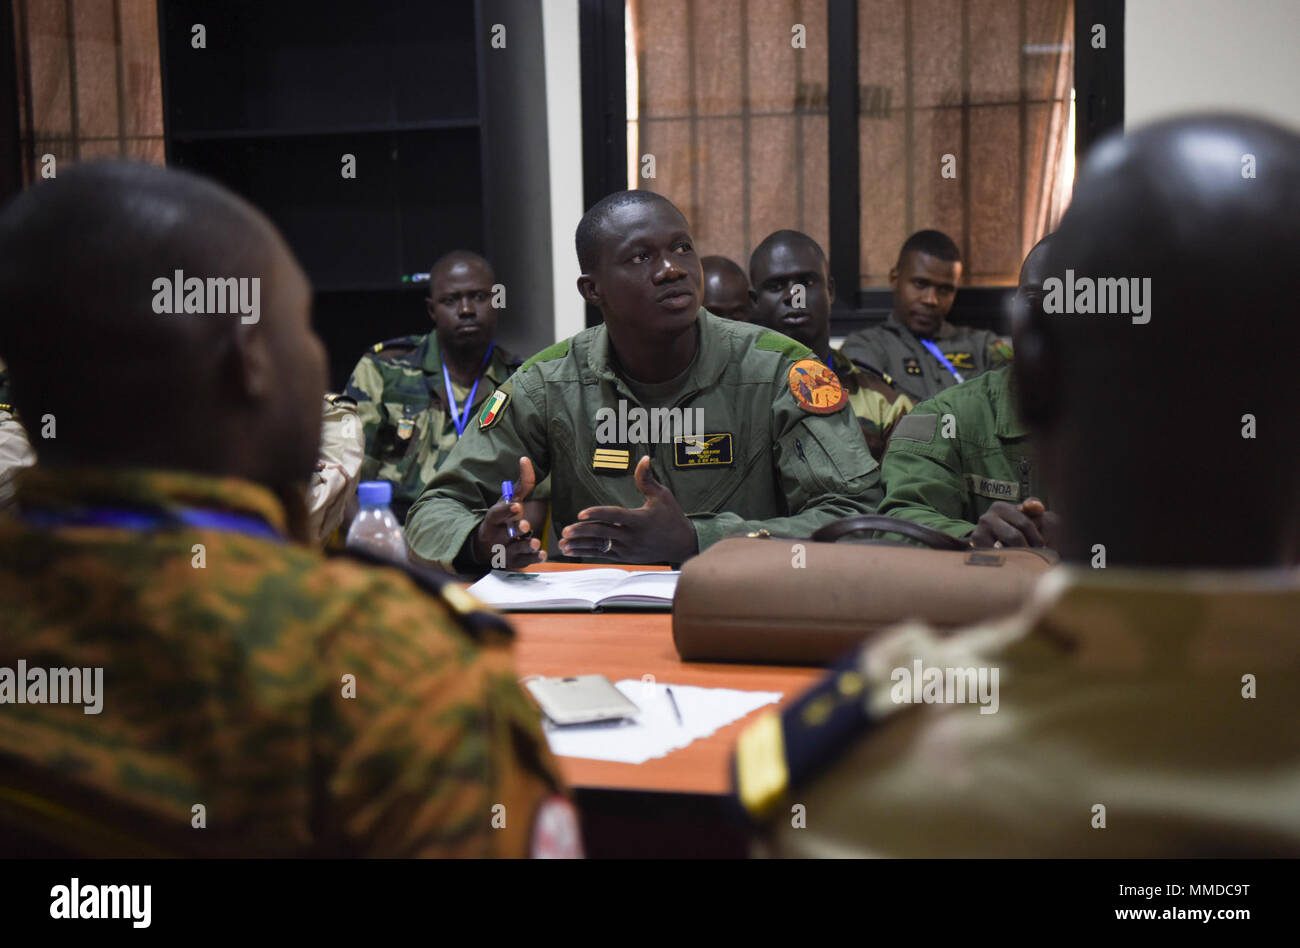 Benin helicopter pilot, Capt. Chabi Ibrahim, discusses safety in air operations during African Partnership Flight Senegal at Captain Andalla Cissé Air Base, Senegal, March 20, 2018. APF Senegal is a multilateral, military-to-military engagement emphasizing security assistance with African air forces. (U.S. Air Force - Stock Image